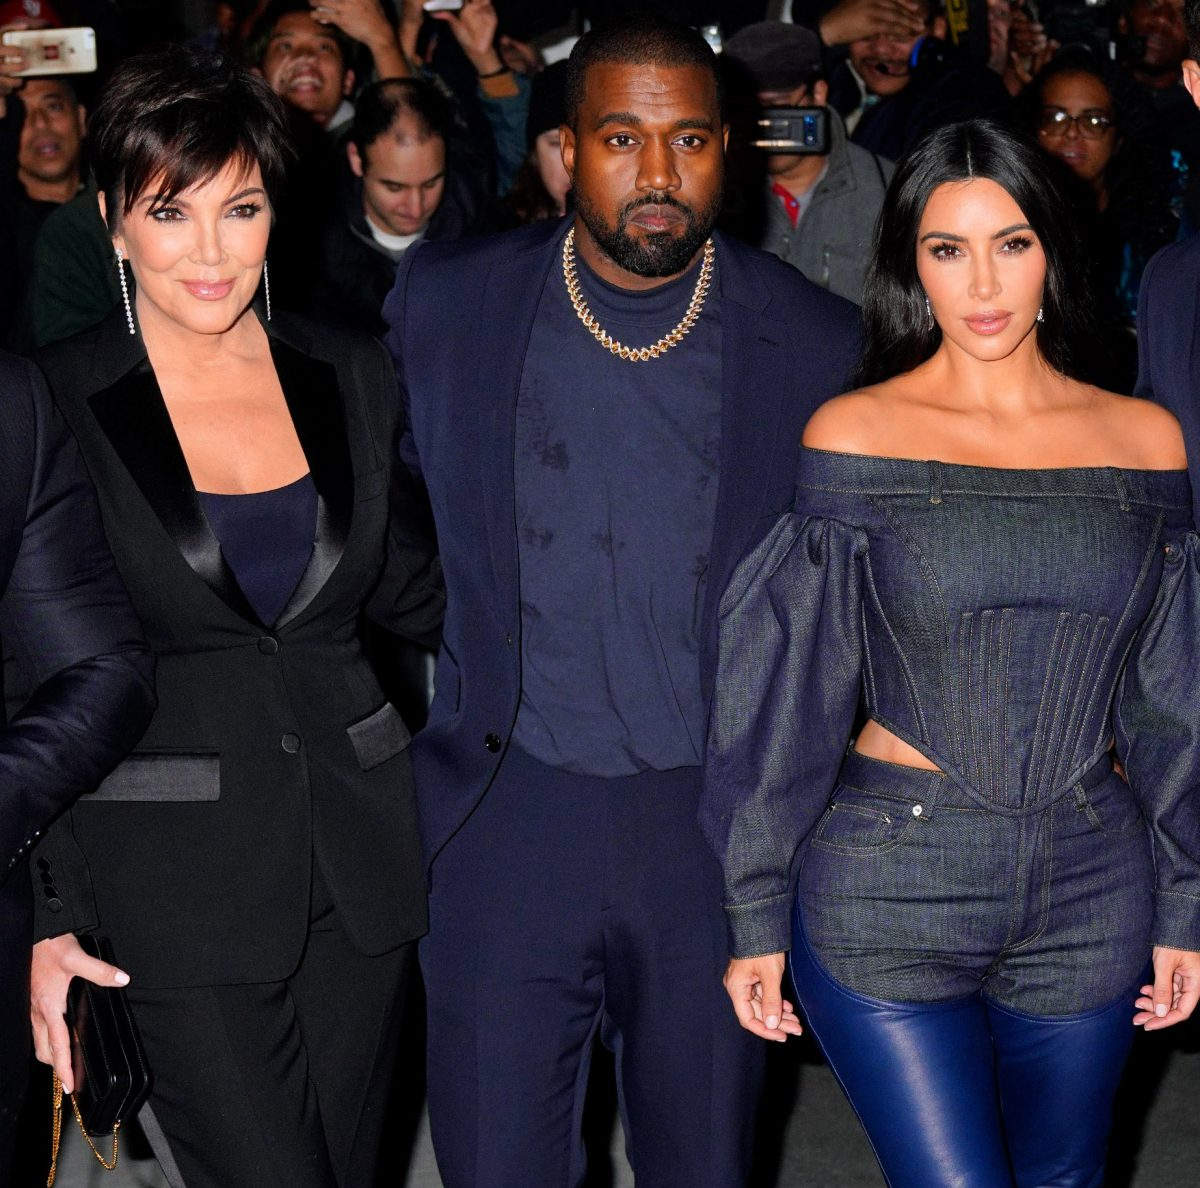 Kris Jenner, Kanye West, and Kim Kardashian West attending an event in New York City